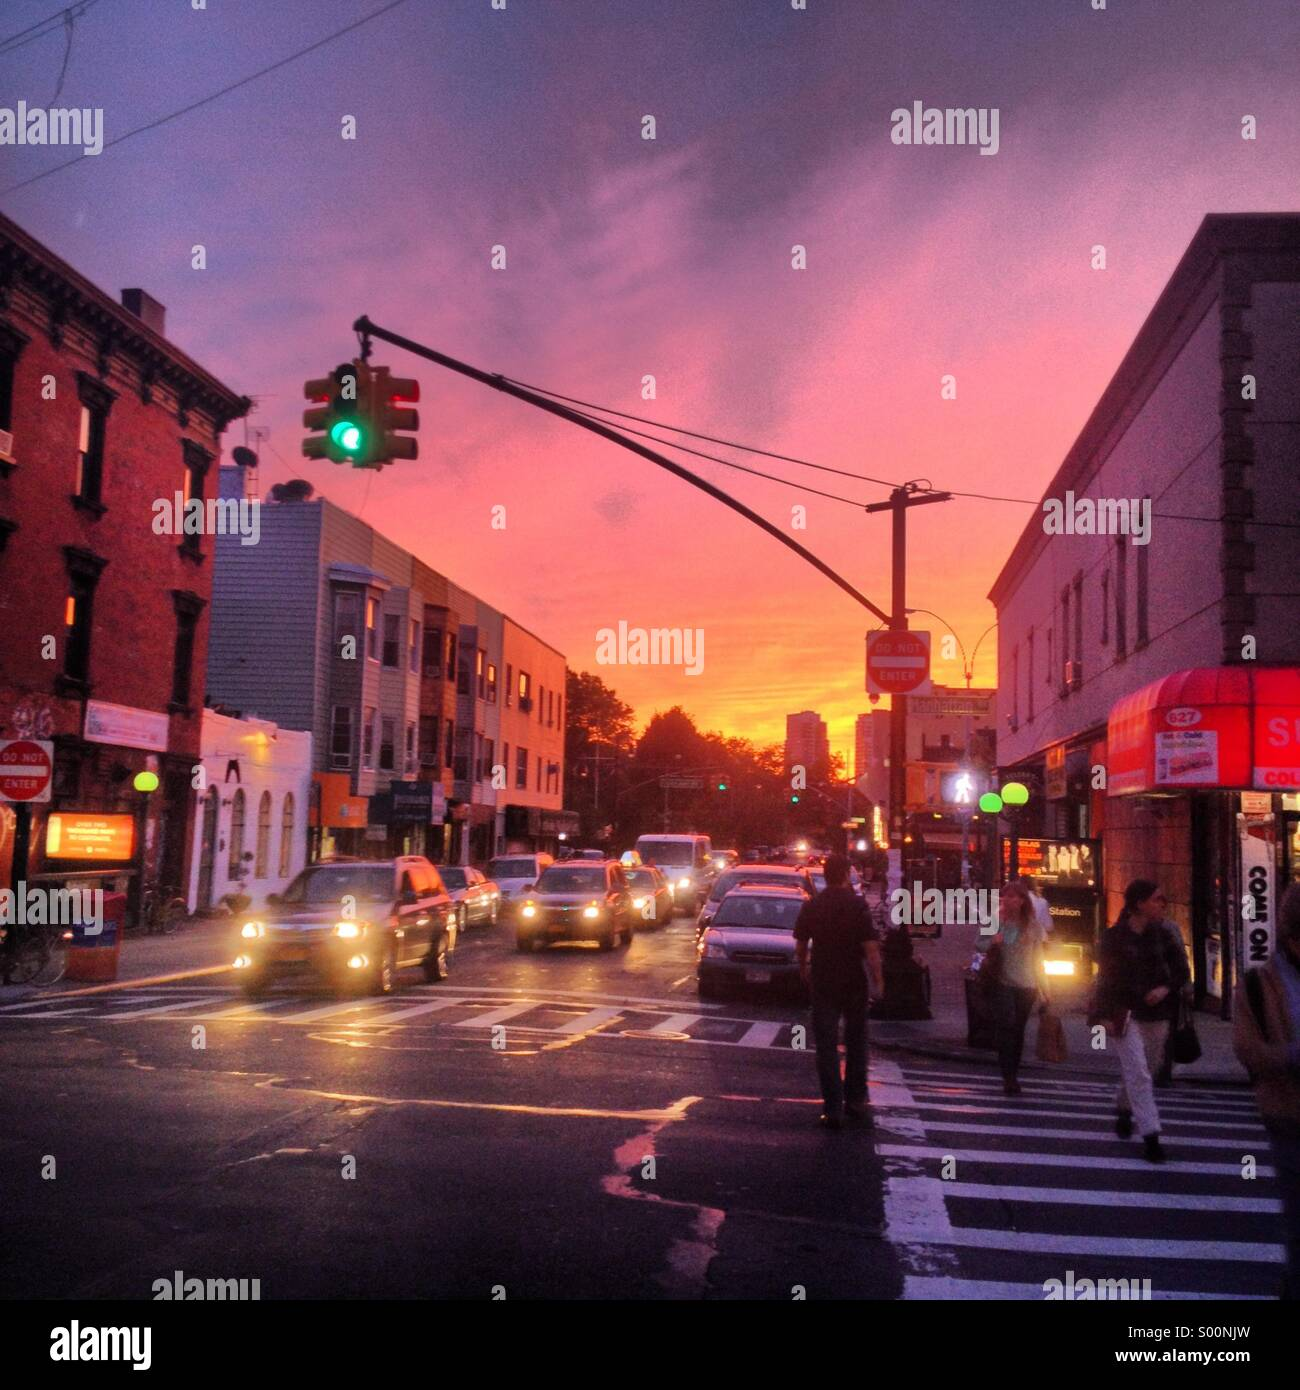 Sunset in Greenpoint, Brooklyn on October 8, 2013. - Stock Image